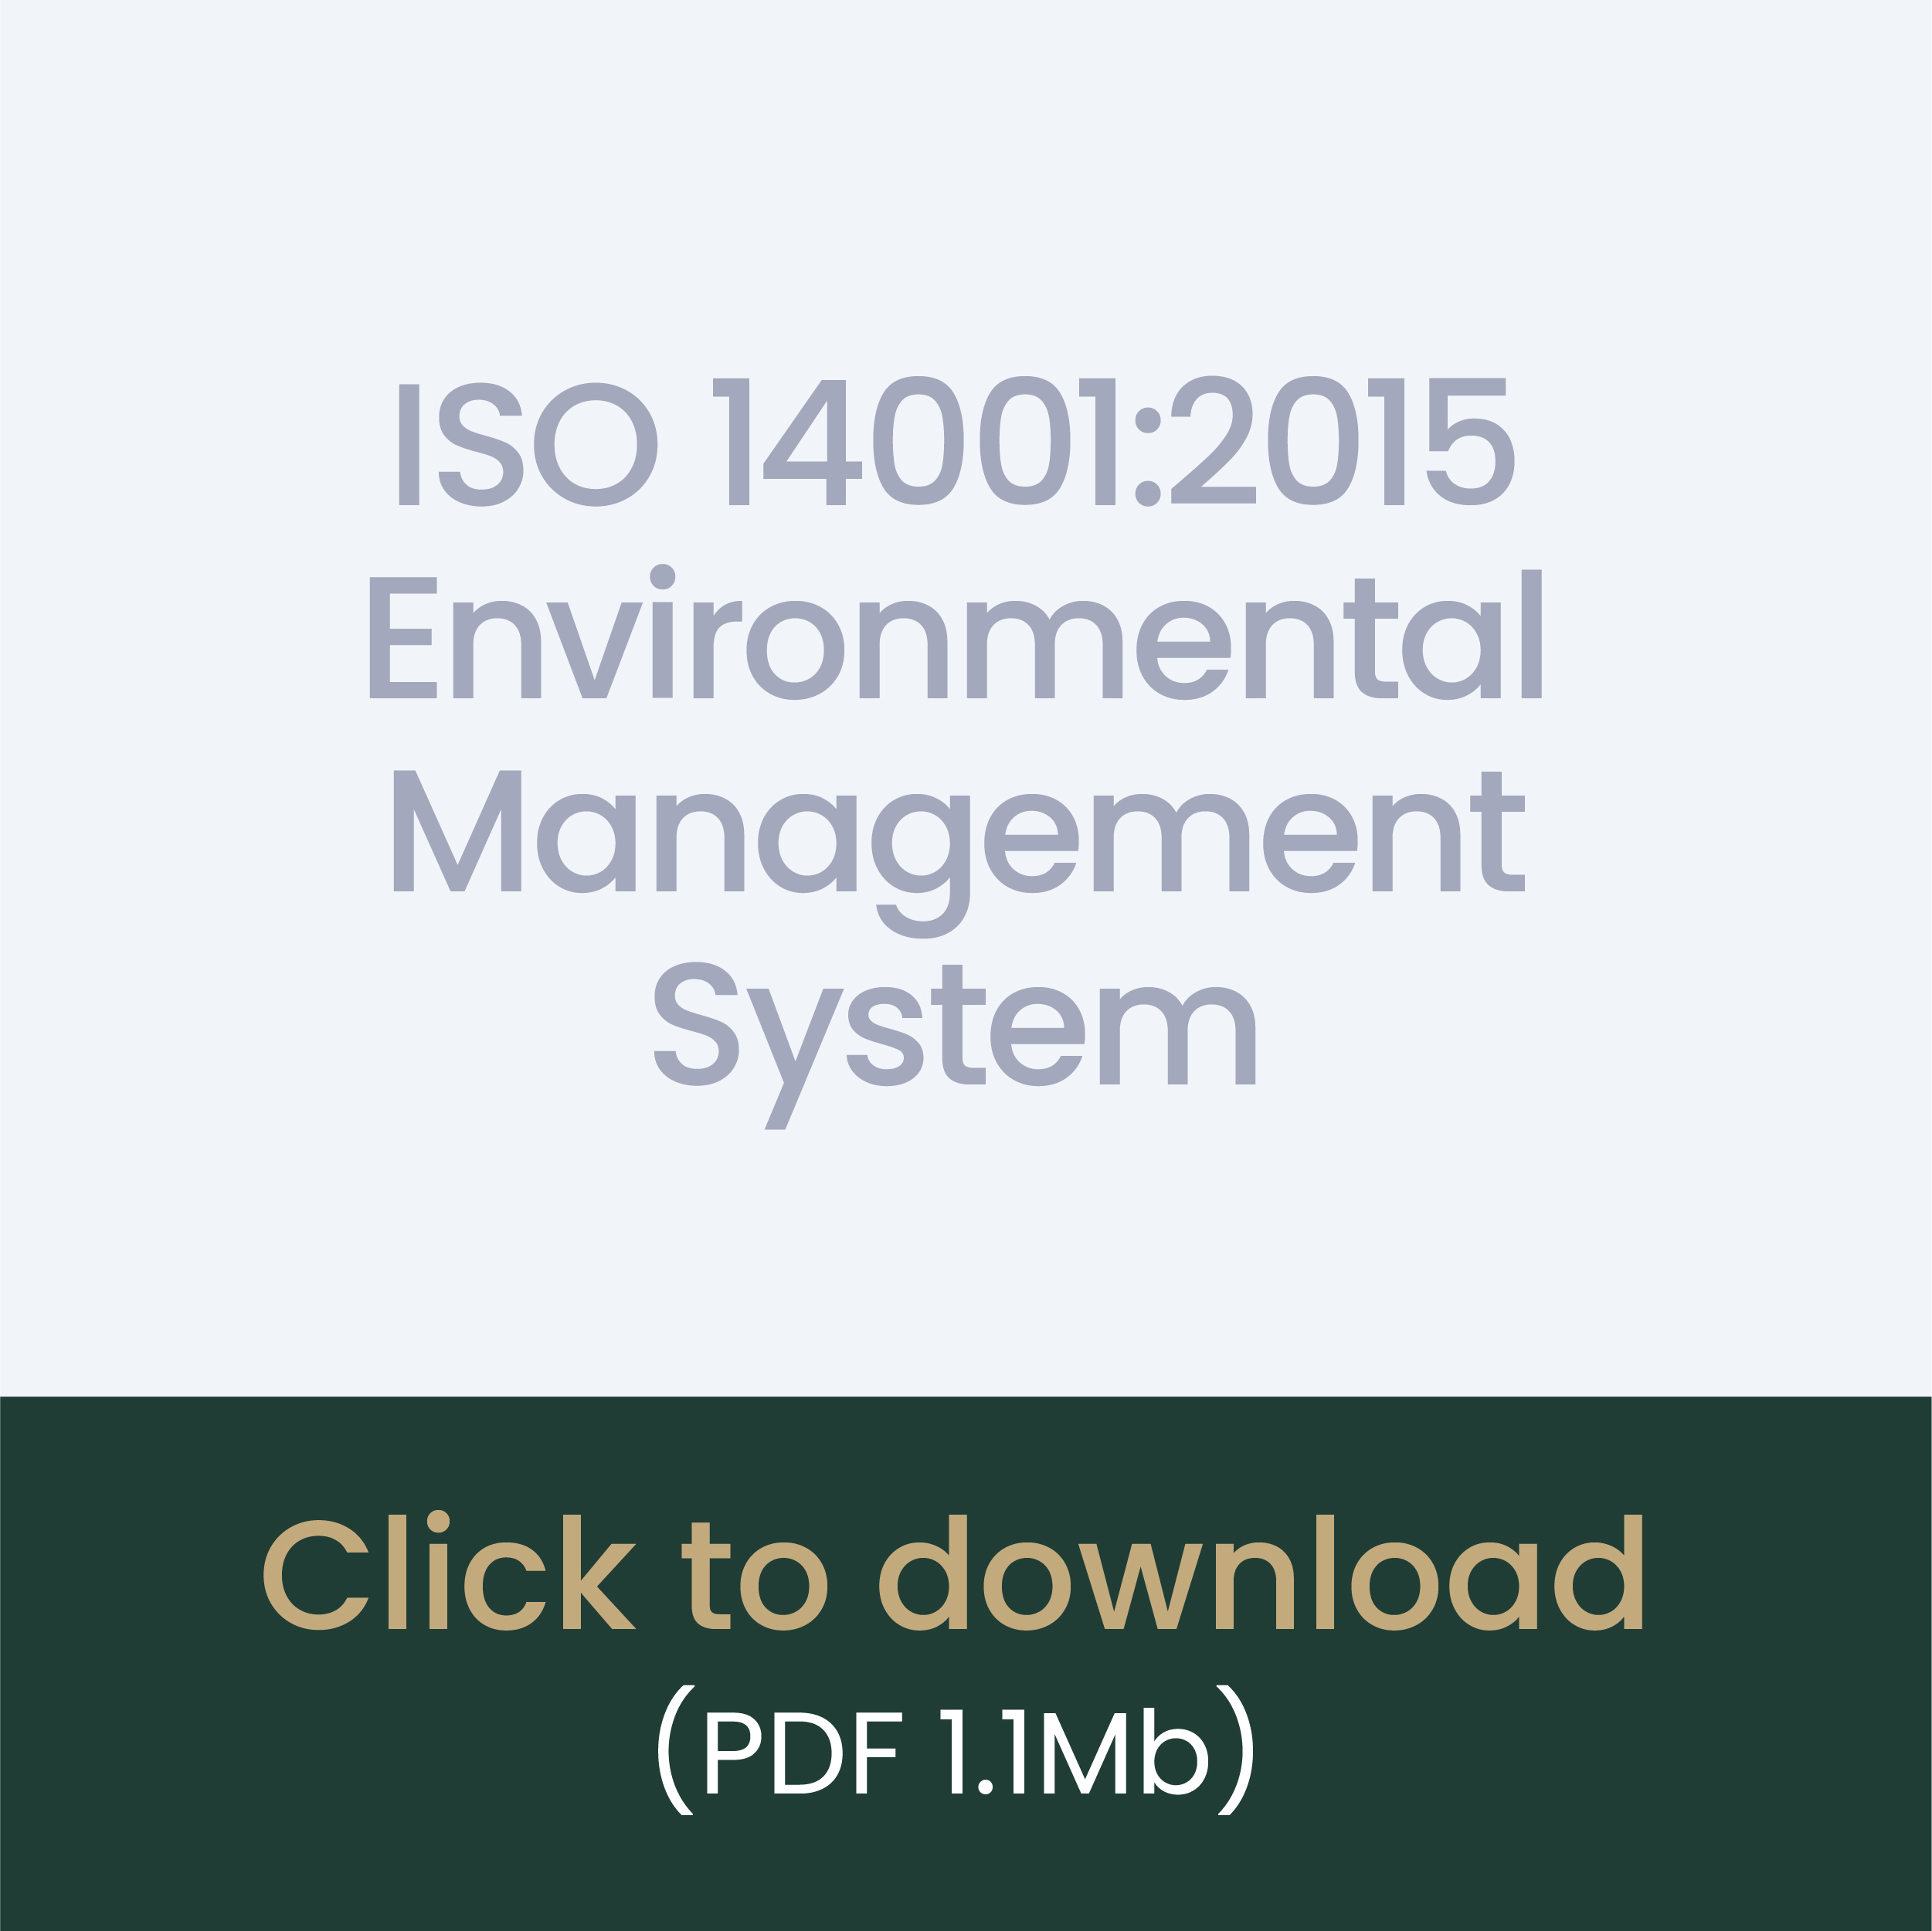 ISO 14001:2015 Environmental Management System download link